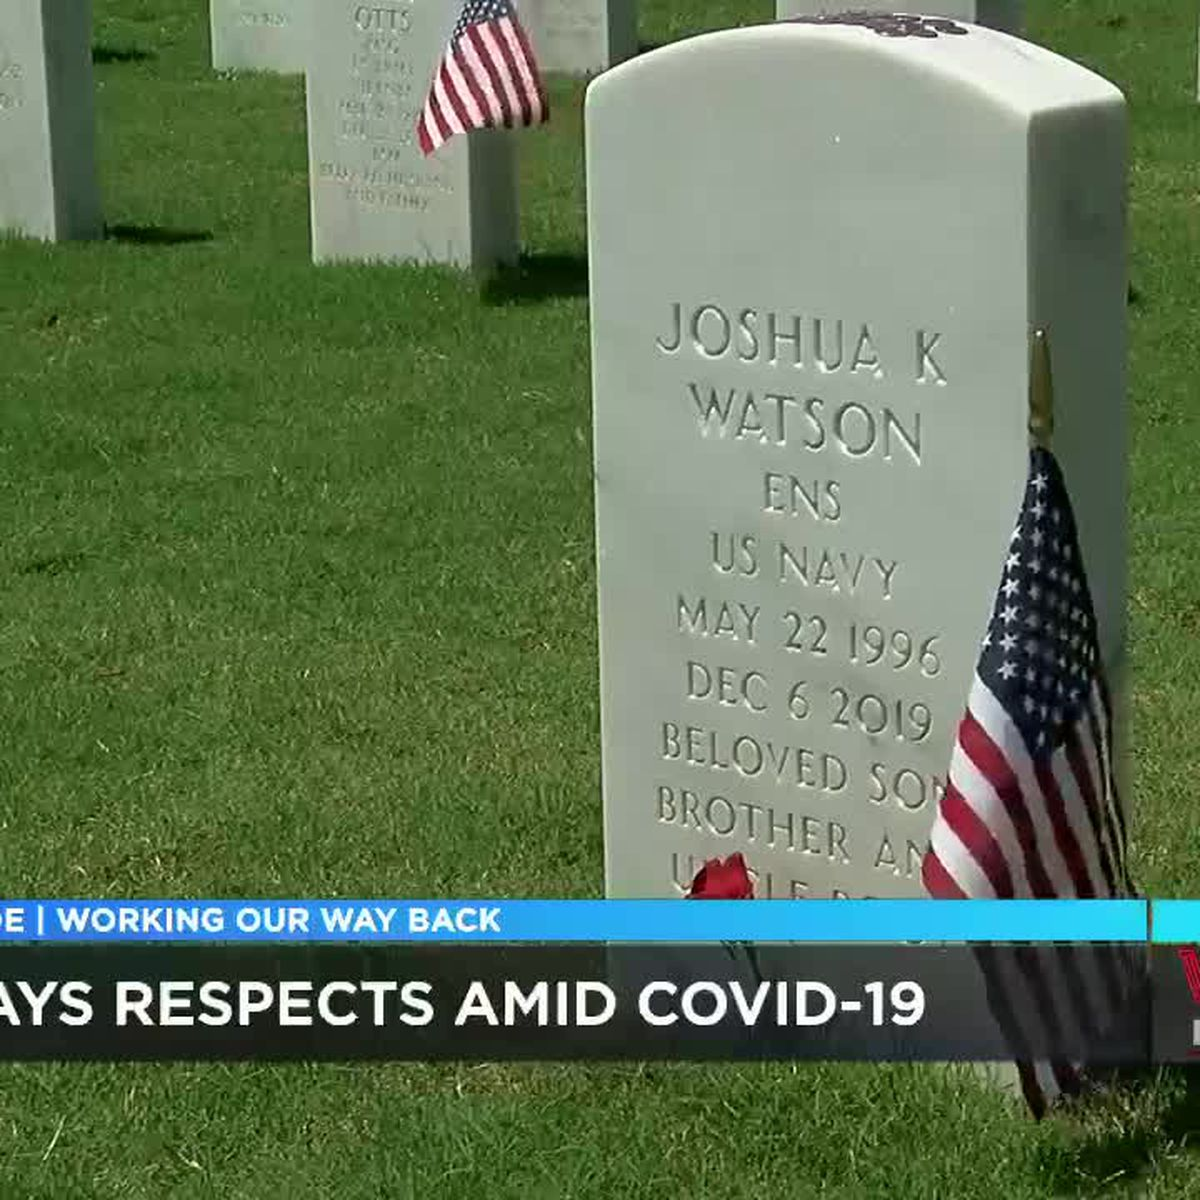 Despite COVID-19, remembrance continues at Alabama National Cemetery